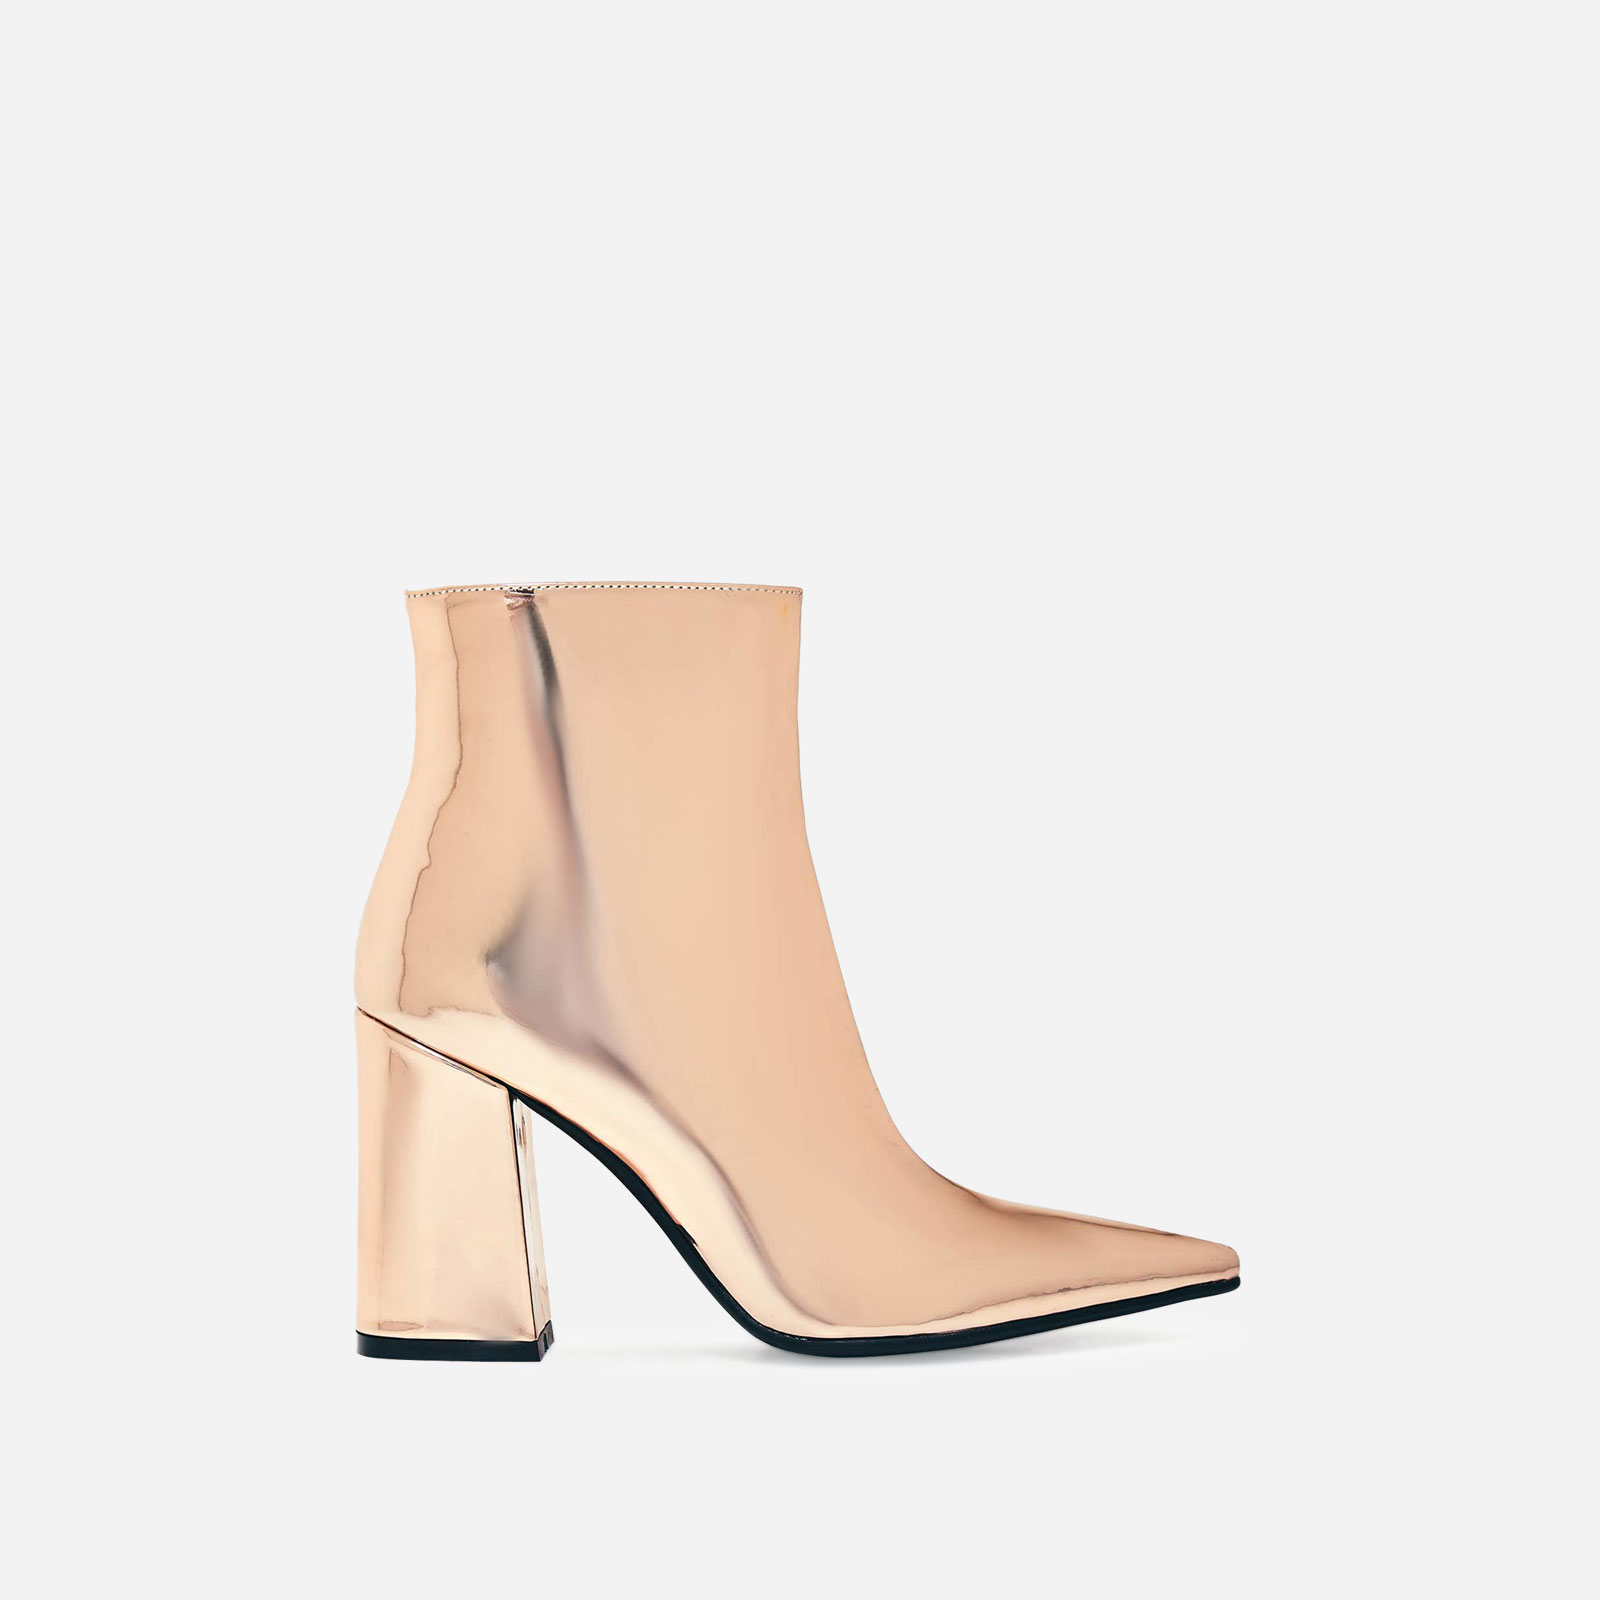 Larna Pointed Toe Ankle Boot In Metallic Rose Gold Faux Leather